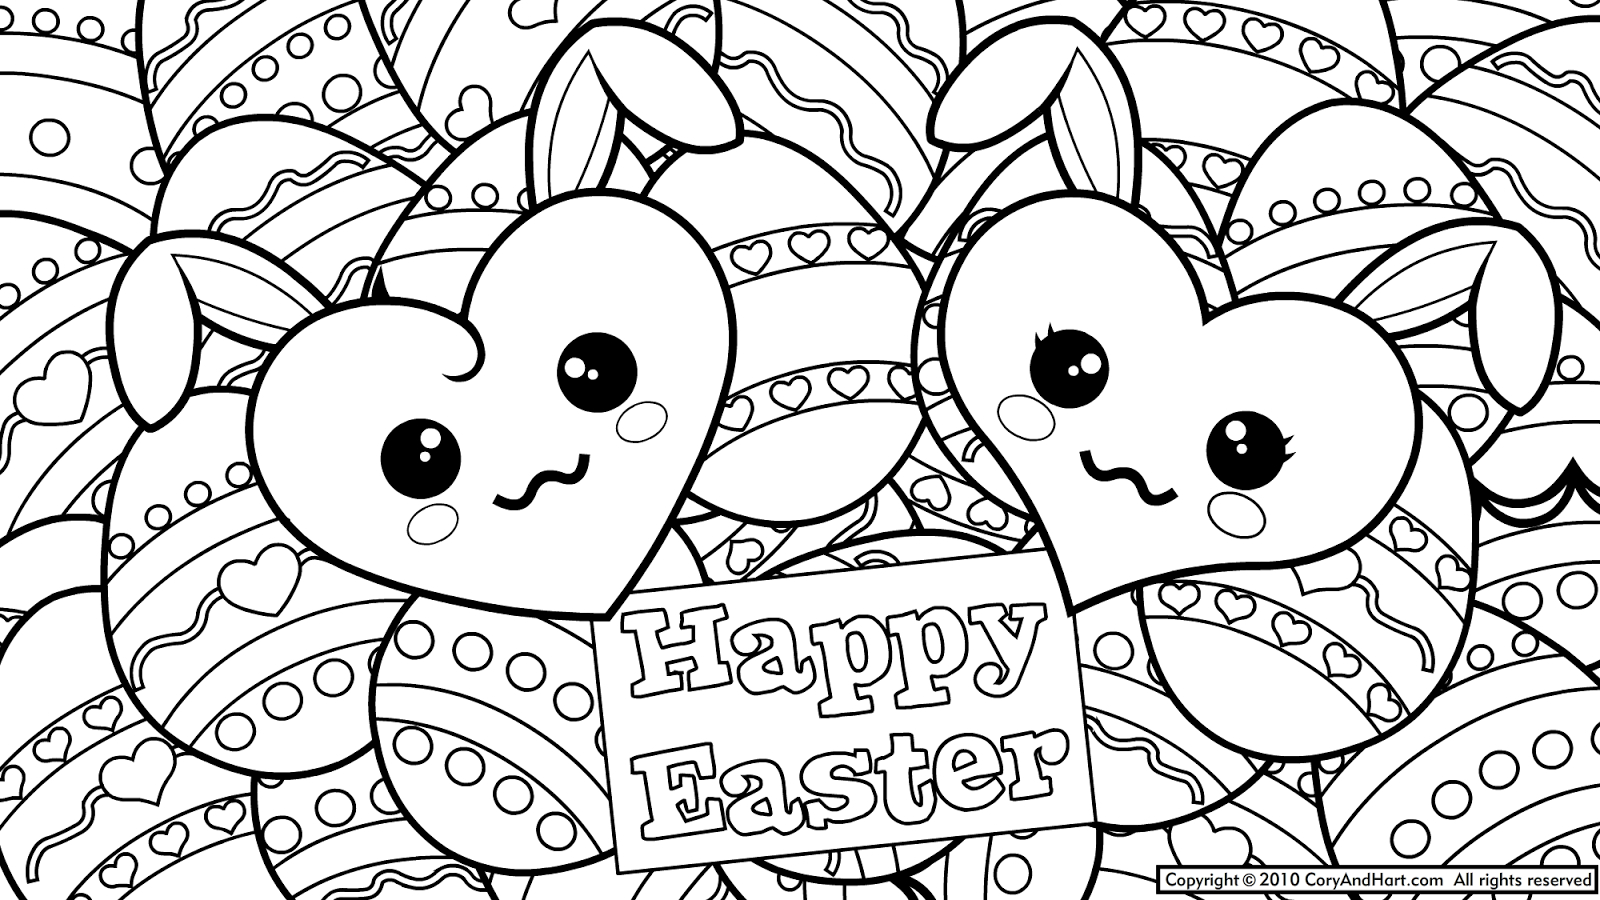 Coloring Easter Pages to Print Printable 10h - Free For kids